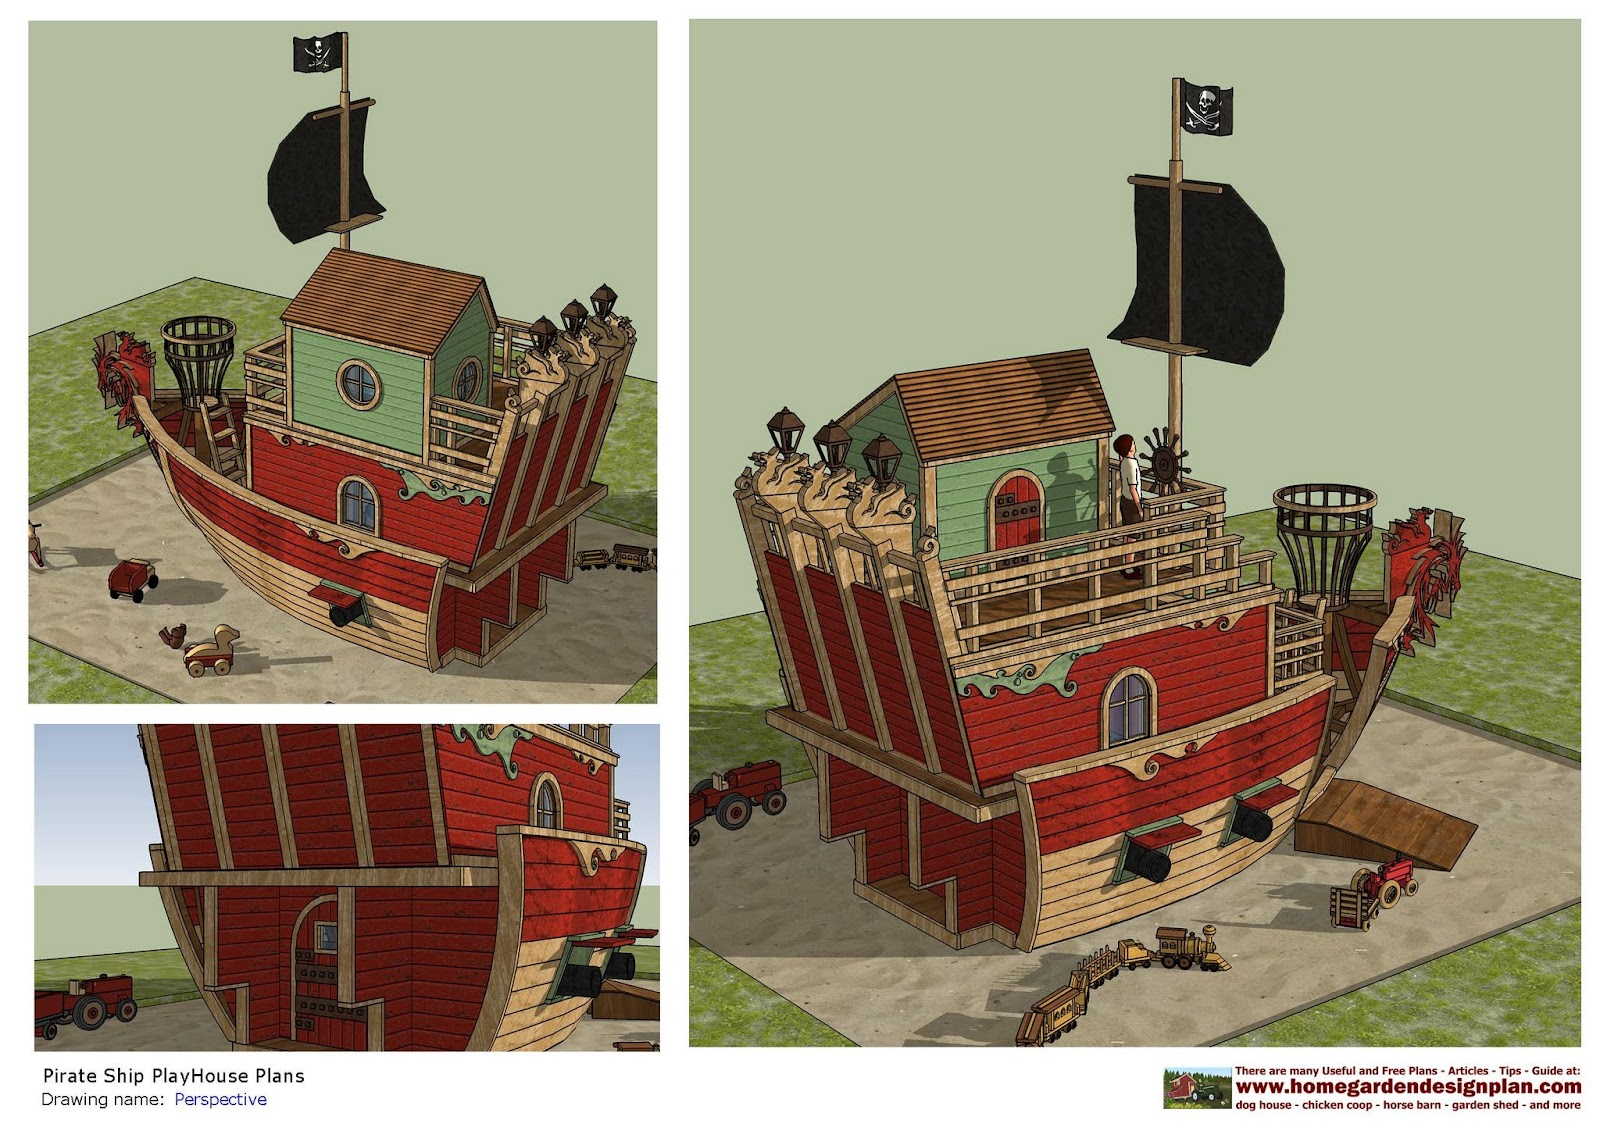 how to build a pirate ship on a barge